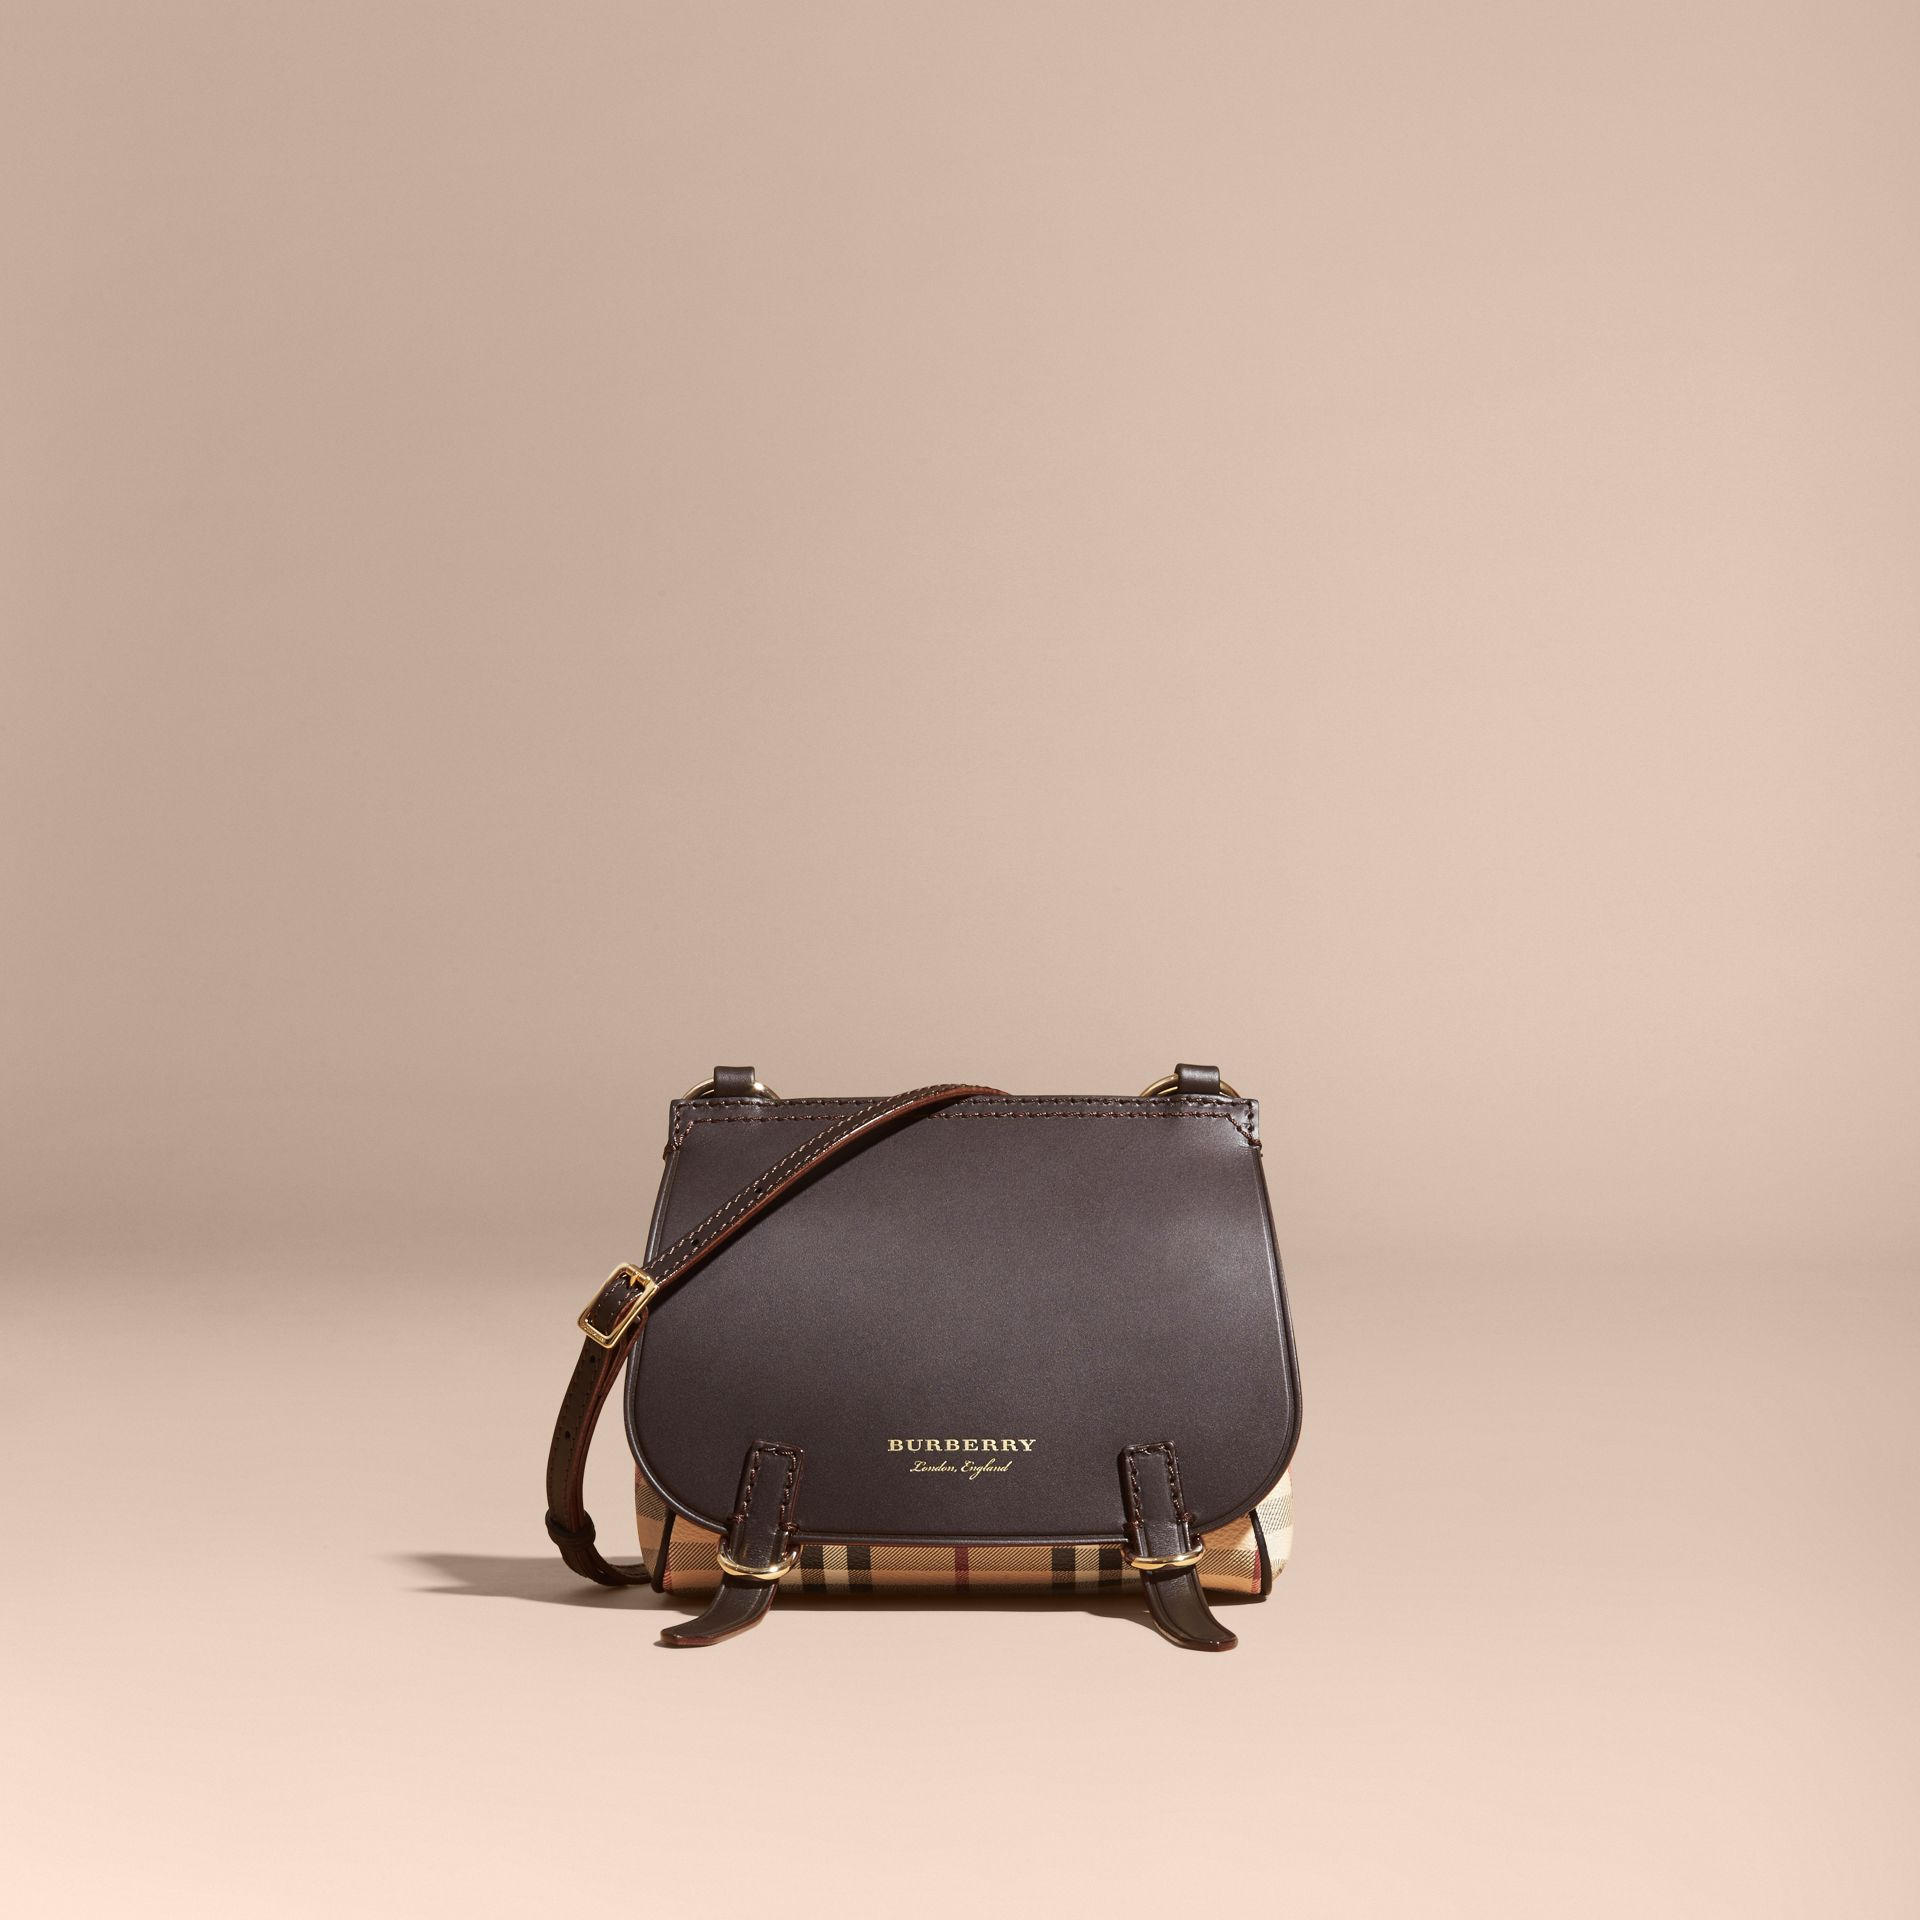 Sac The Baby Bridle en cuir et tissu Haymarket check (Marron Girofle Sombre) - Femme | Burberry - photo de la galerie 8